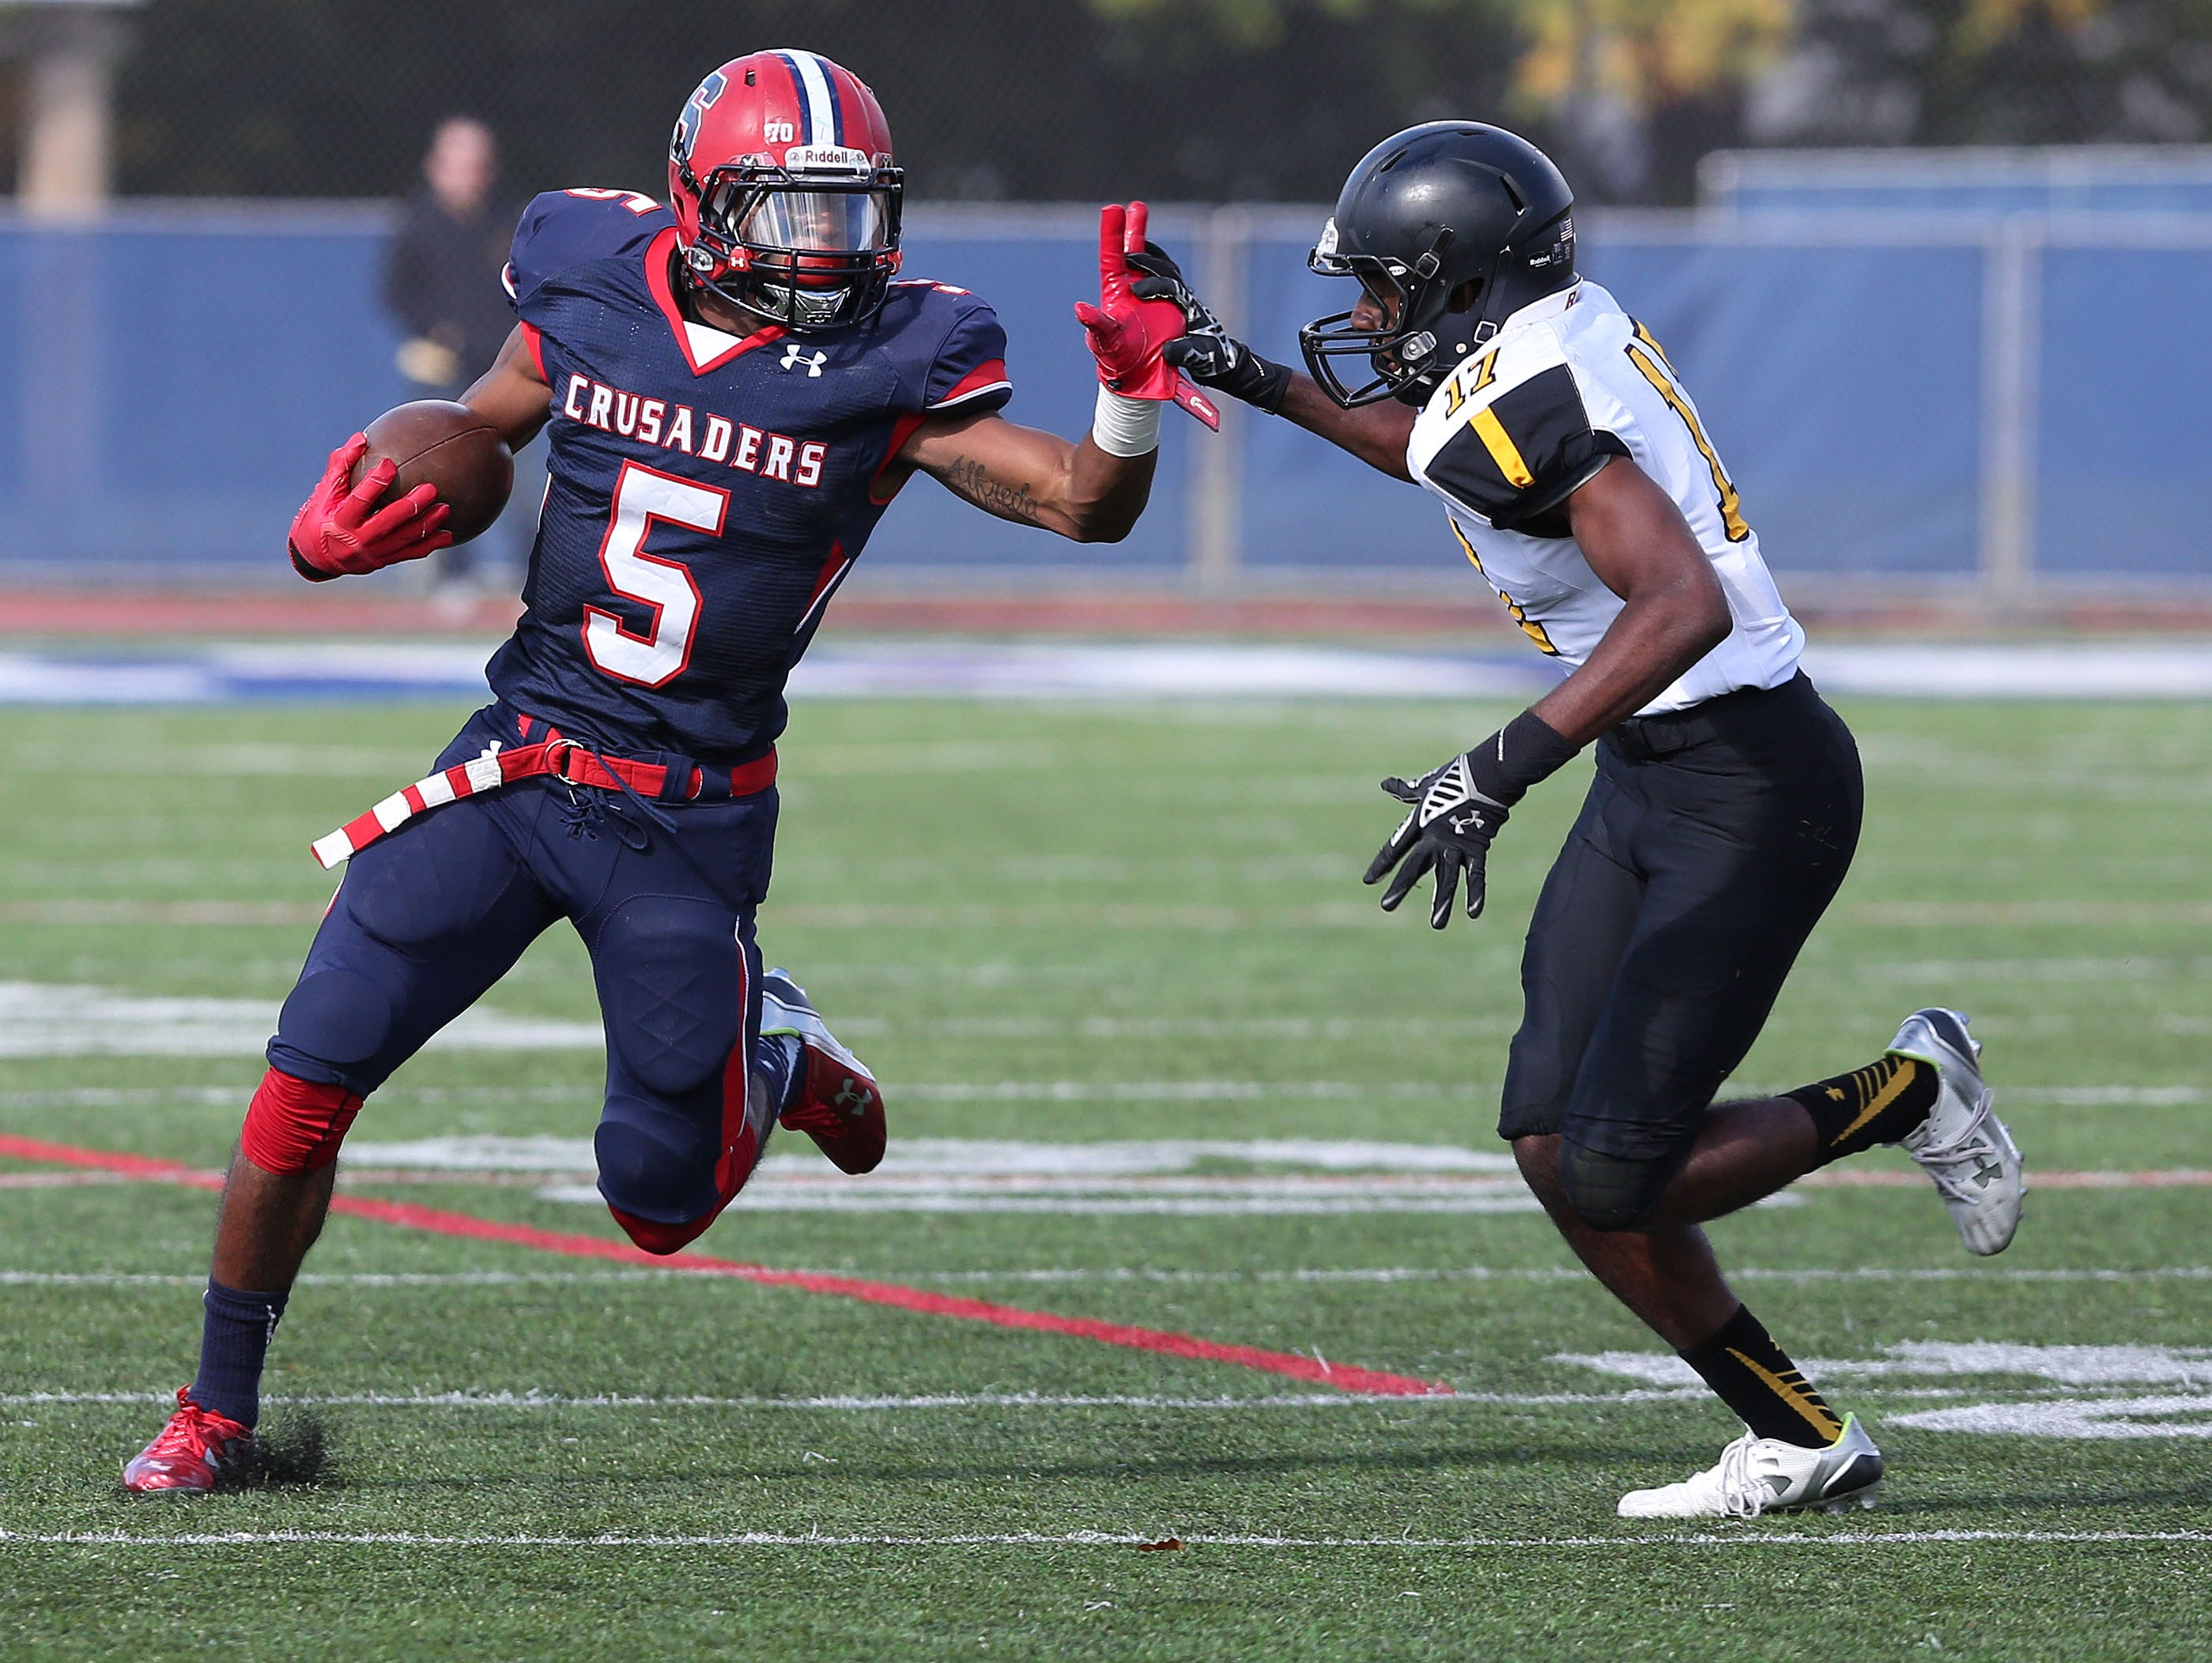 Stepinac's Kobe Miranda (5) tries to get around Saint Anthony's Justin Percival (17) on a first half run during a football game at Stepinac High School in White Plains Oct. 17, 2015. Stepinac won the game 49-32.